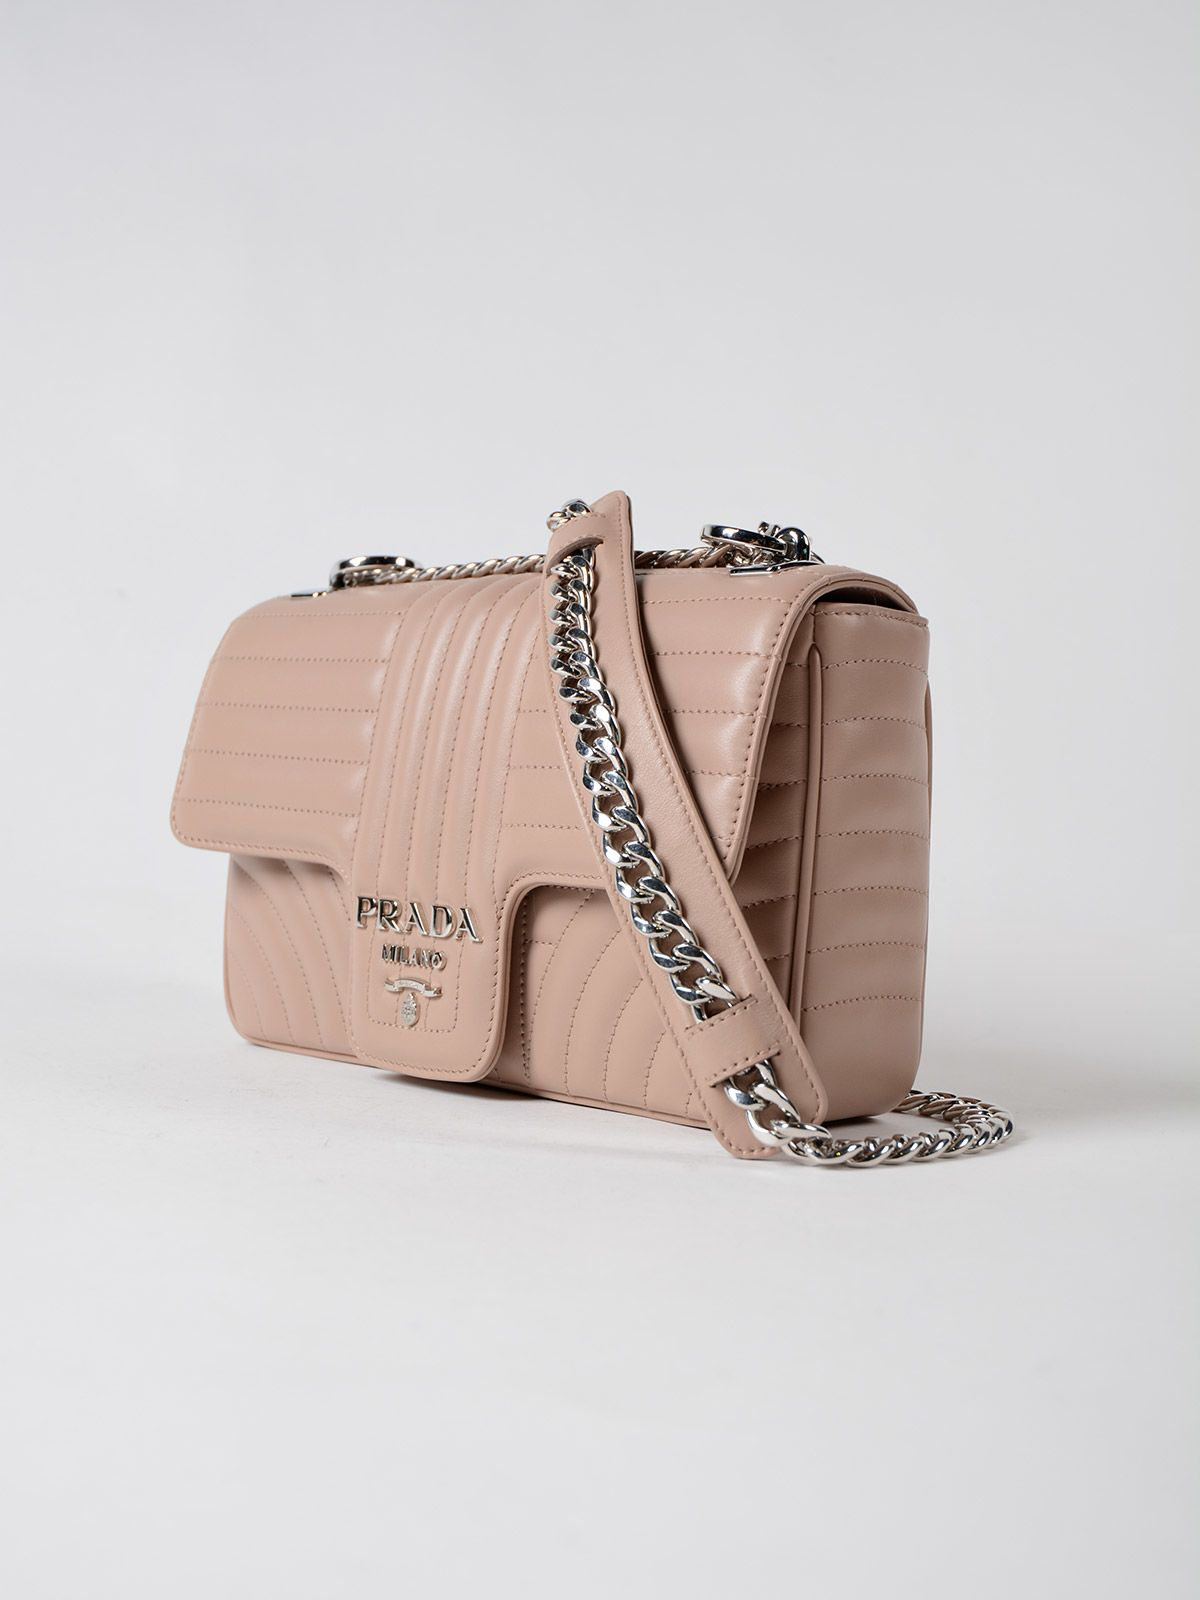 Tote - Diagramme Tote Calfskin Leather Cipria - beige - Tote for ladies Prada yM3ppyXh